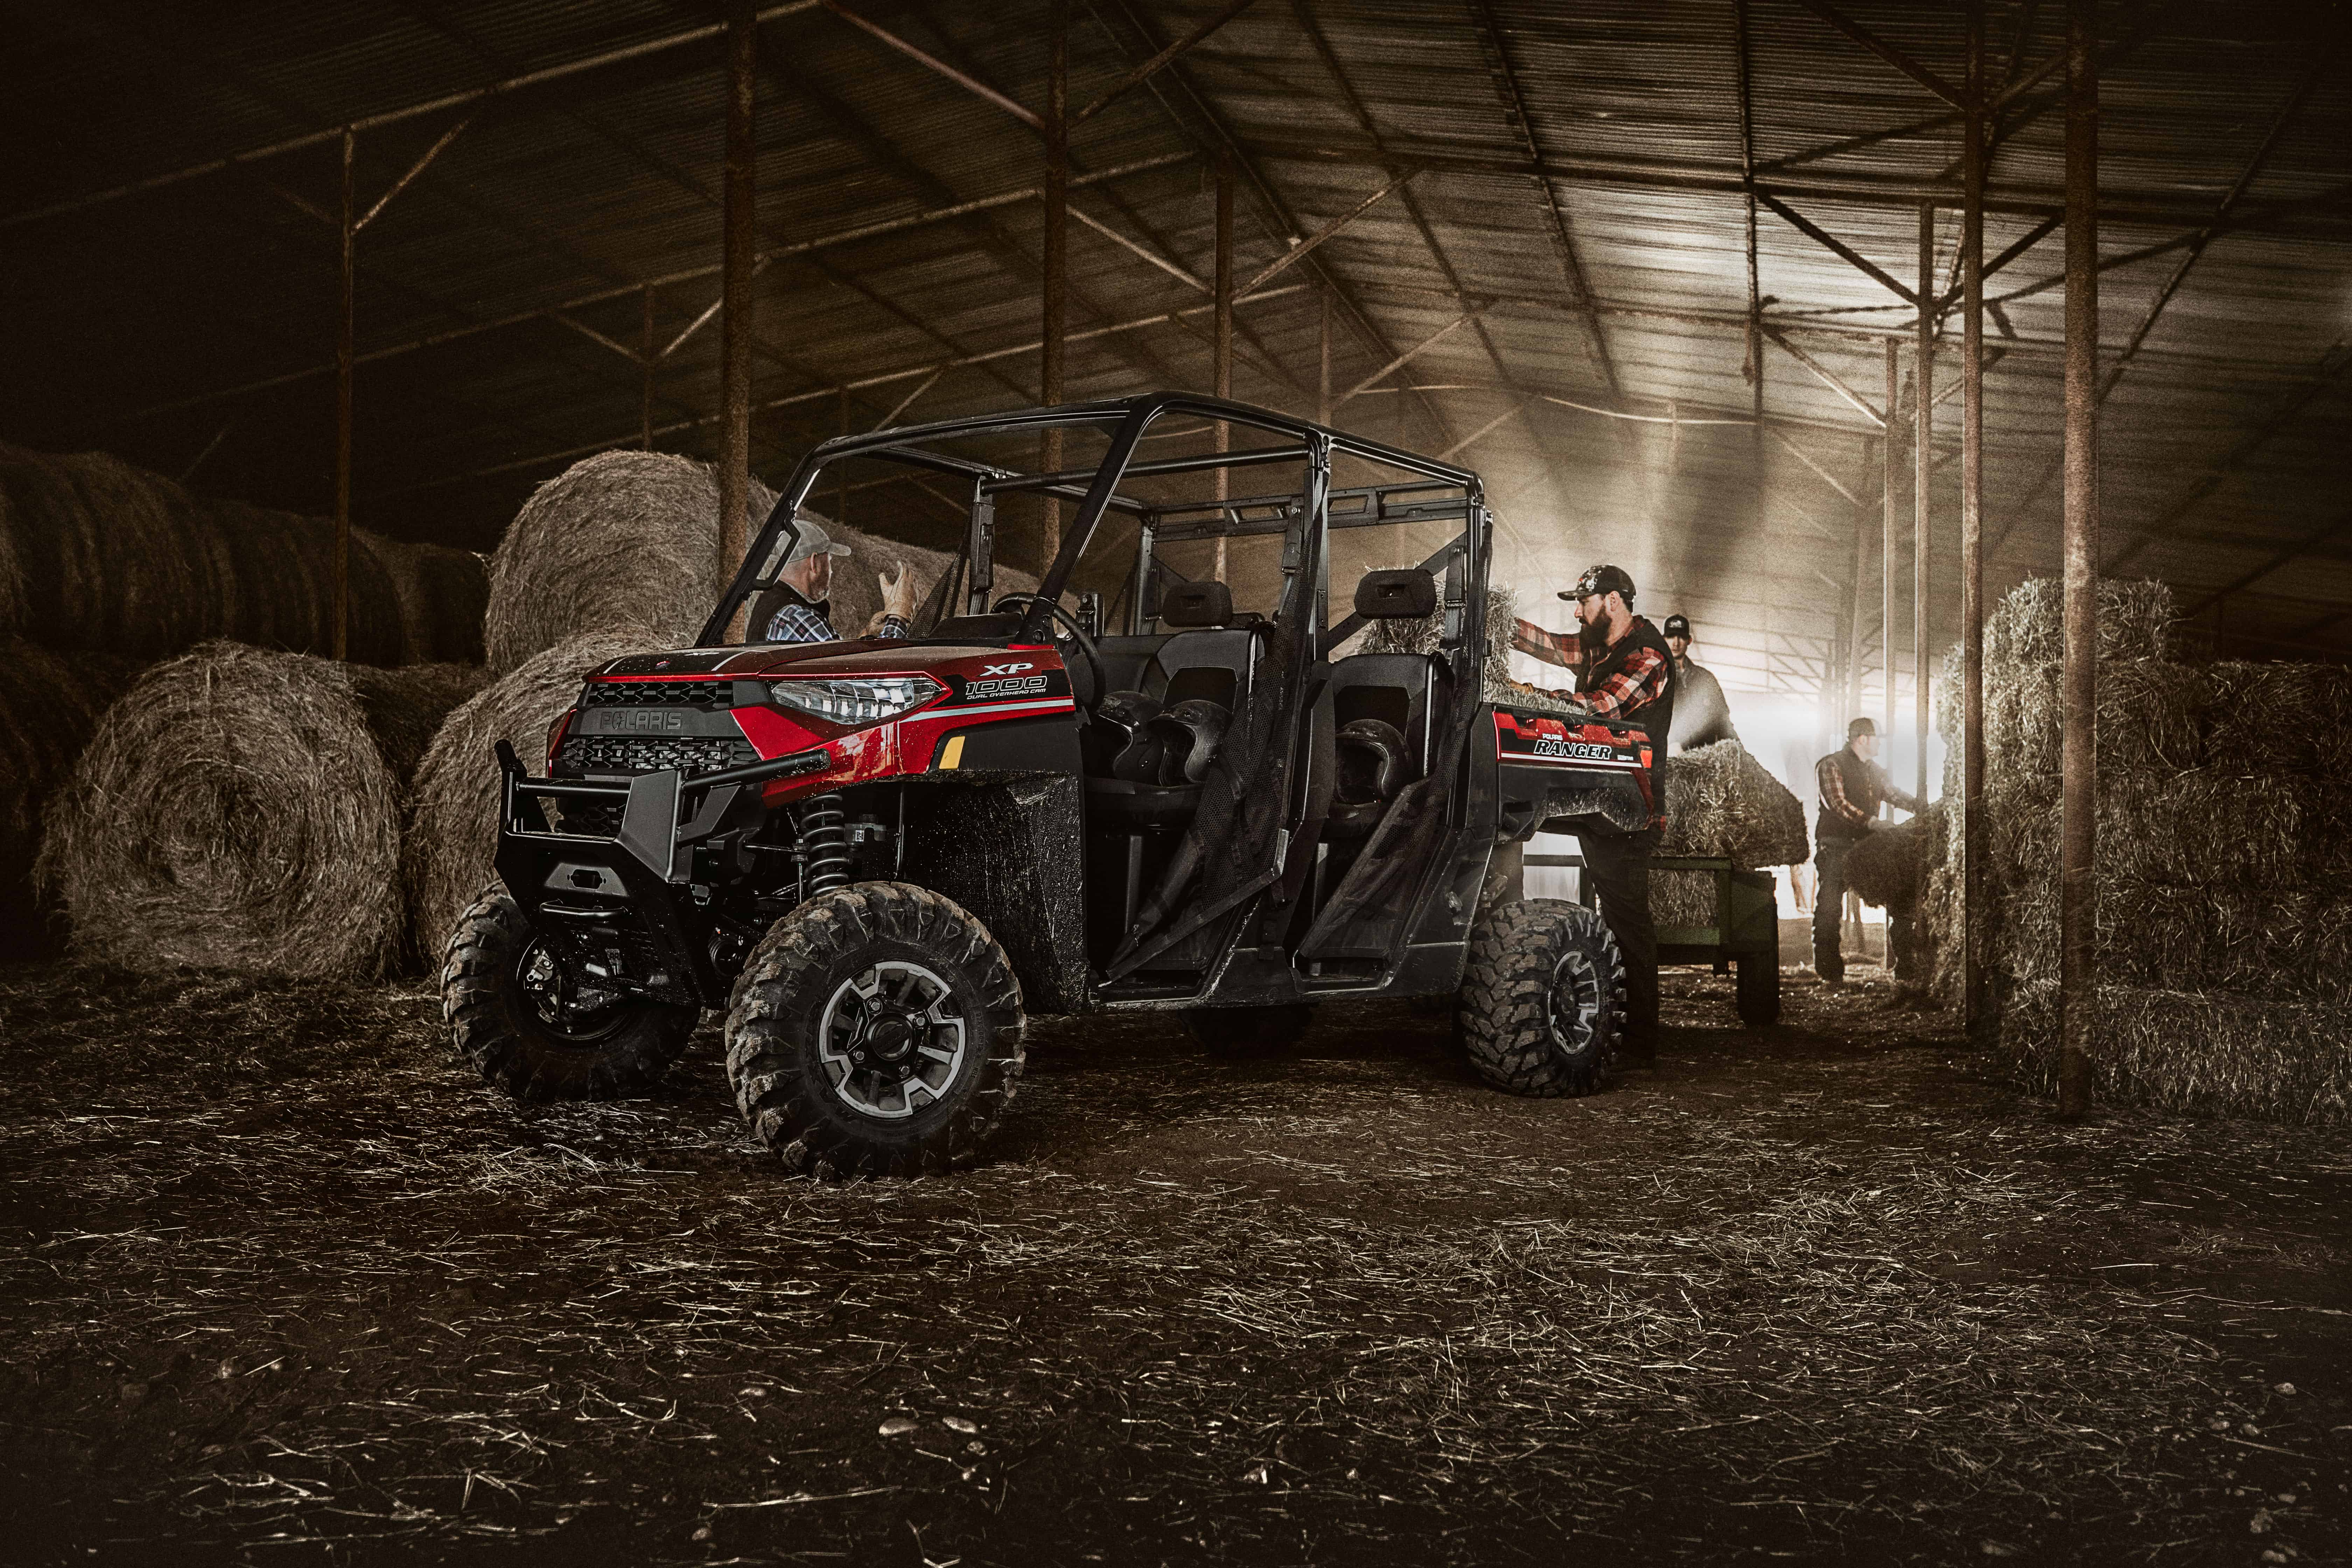 Polaris Side By Side >> 2019 Polaris RANGER CREW XP 1000 First Look!